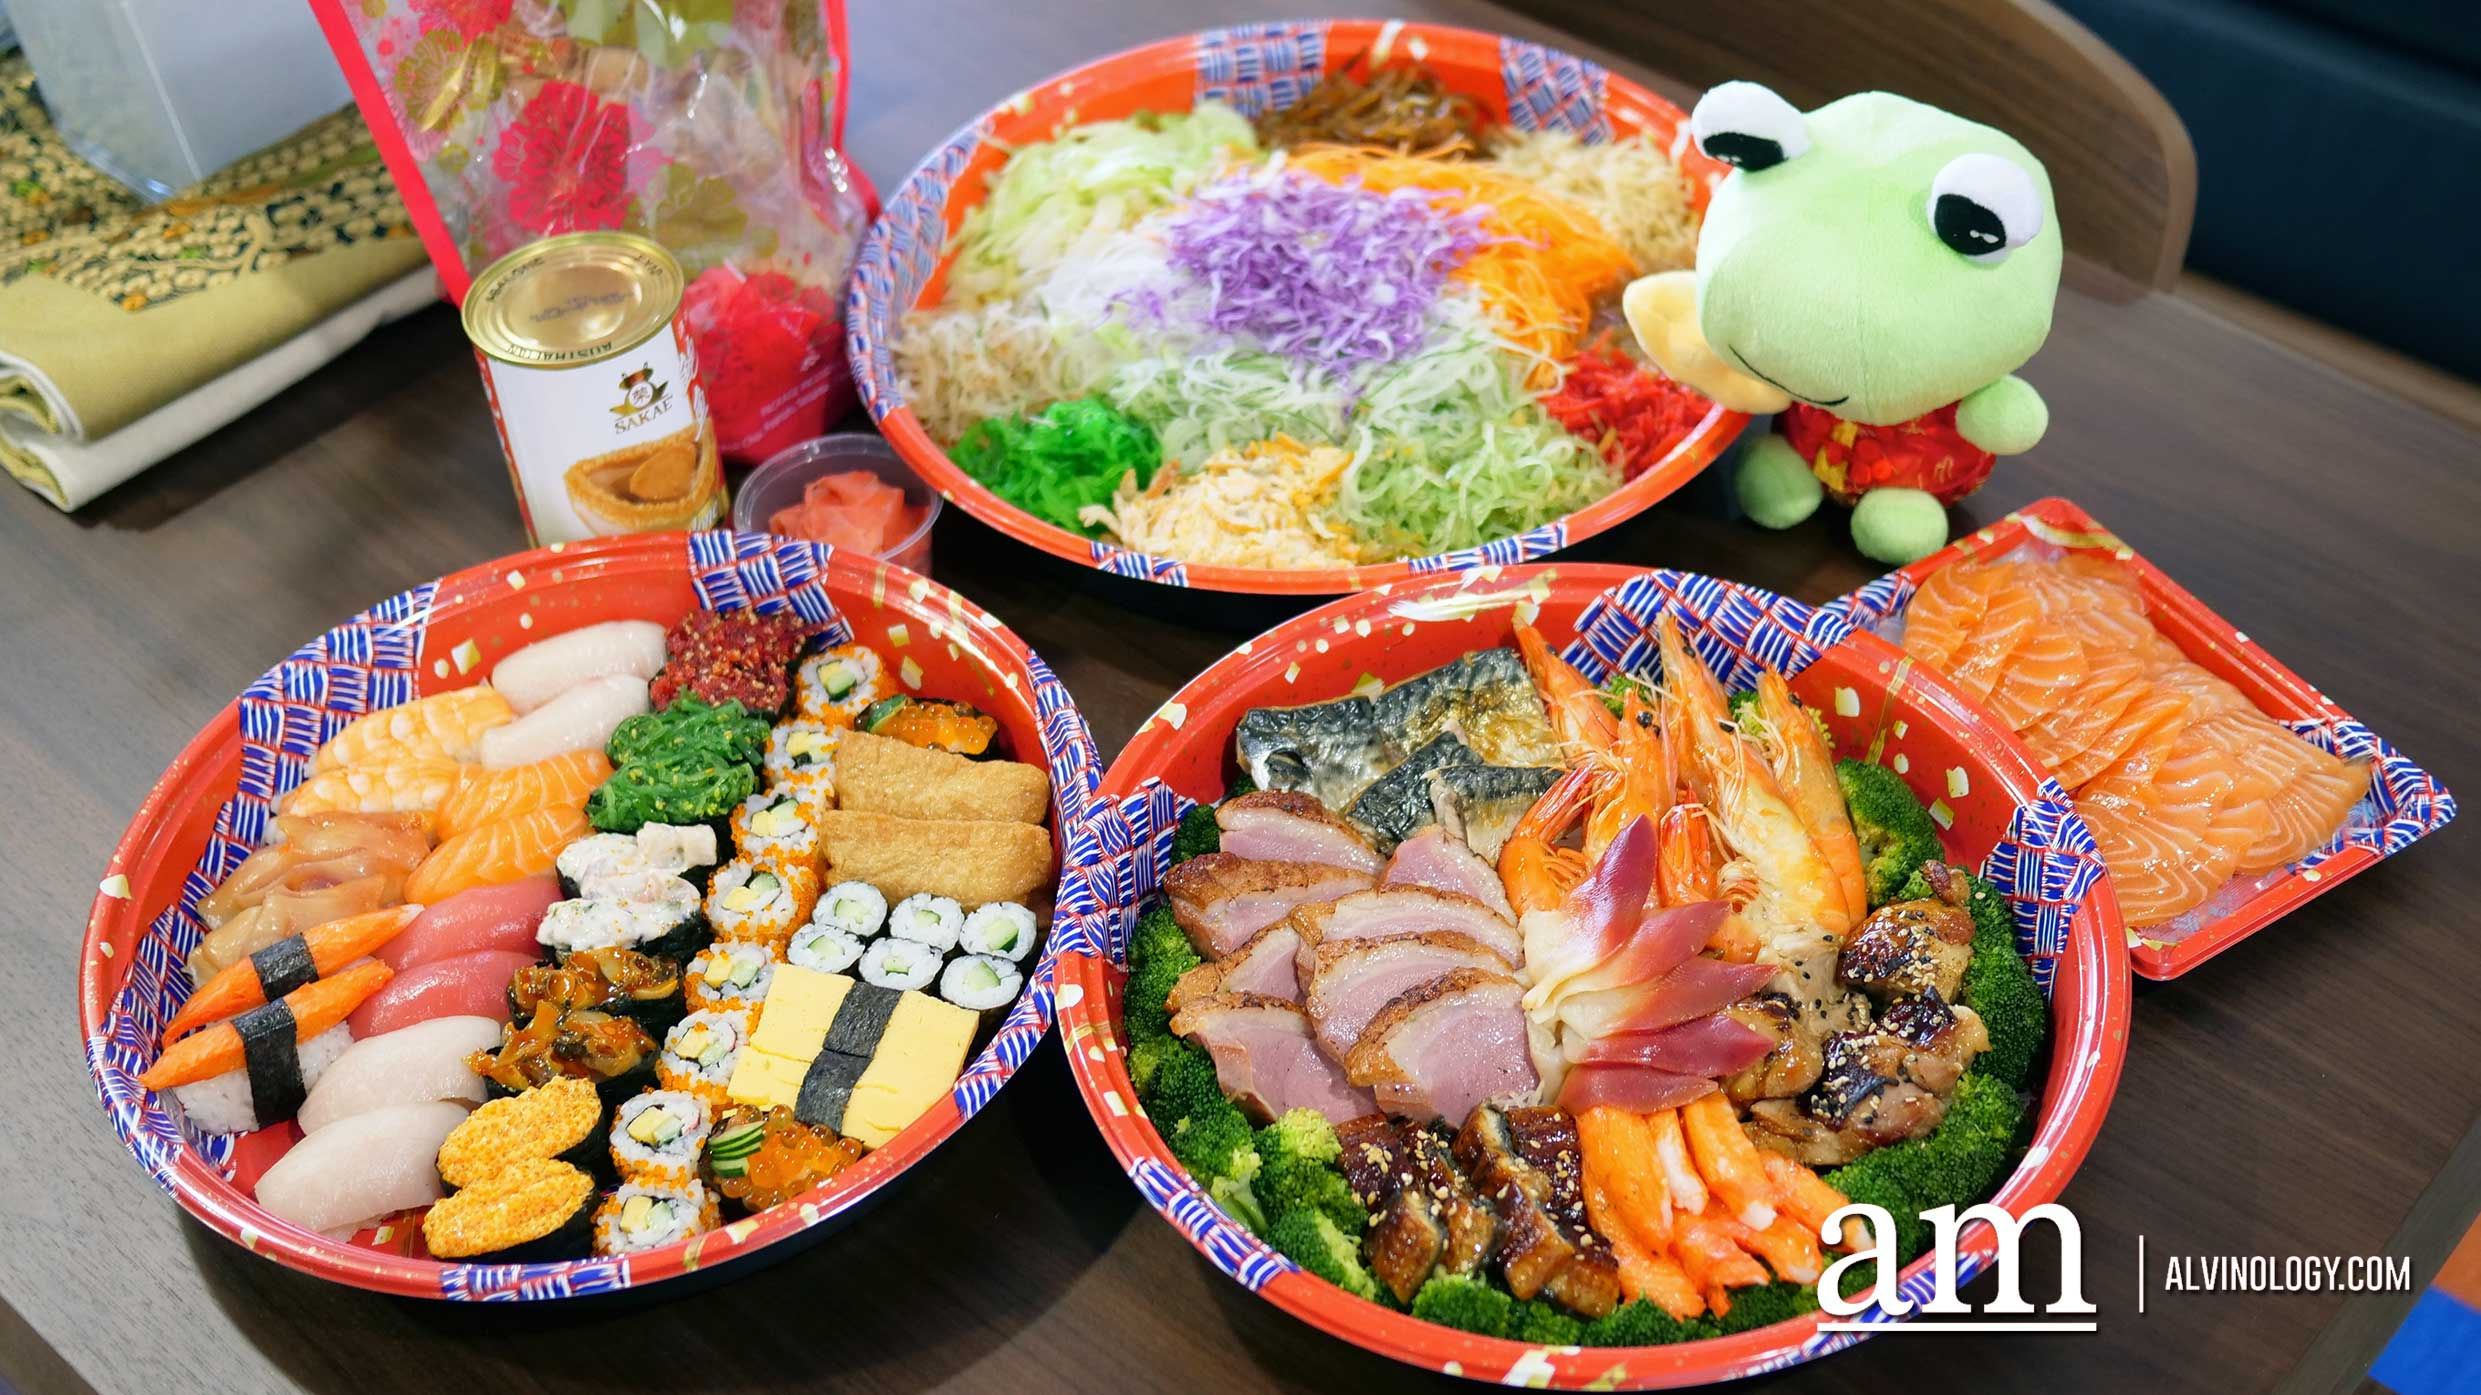 Sakae Sushi Yusheng Delivery - from just S$38.88, with salmon and abalone options - Alvinology